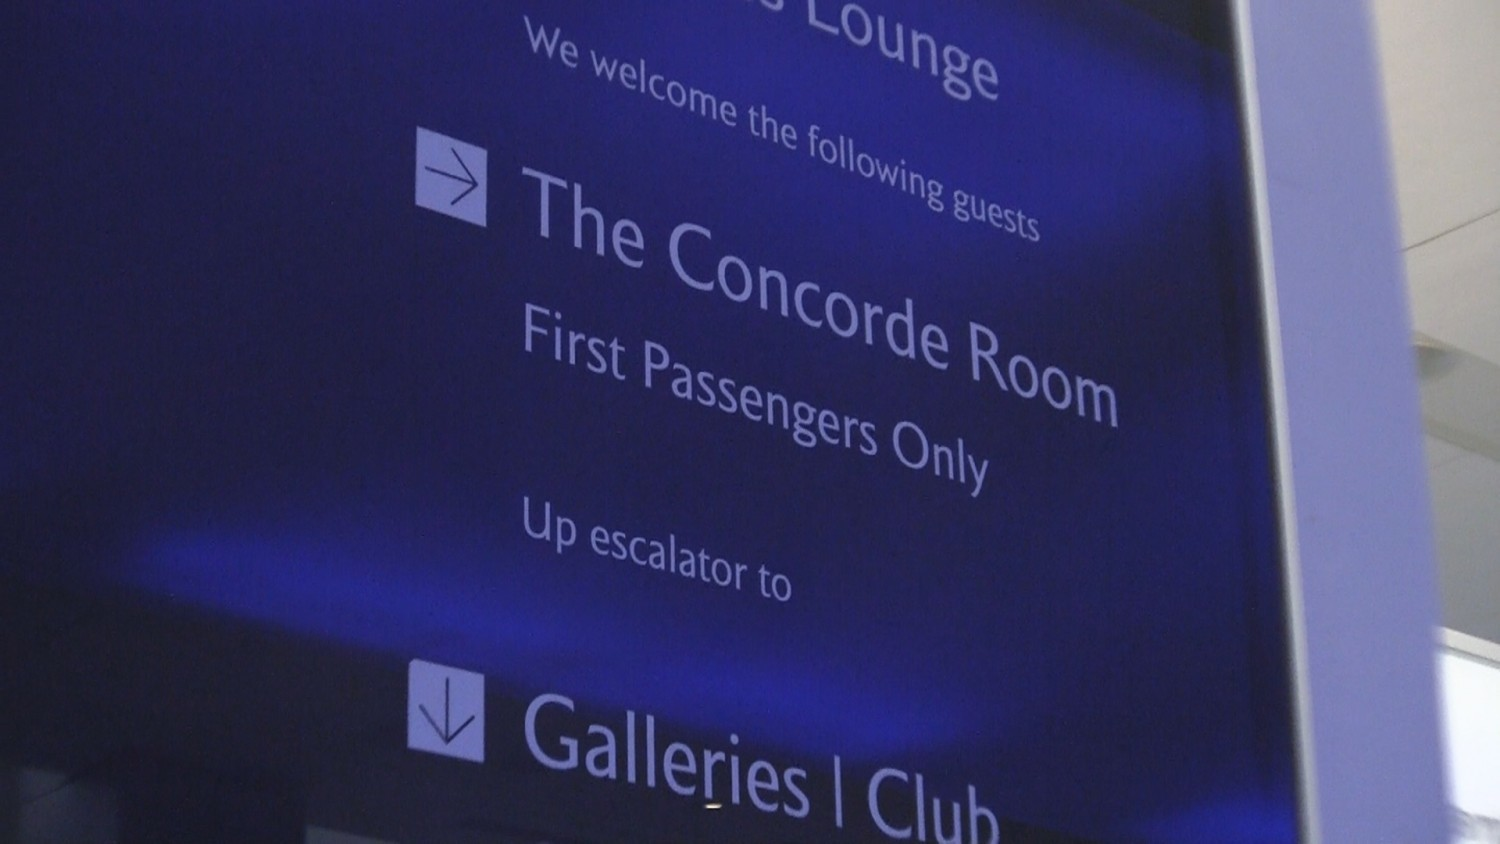 British Airways Concorde Room Heathrow